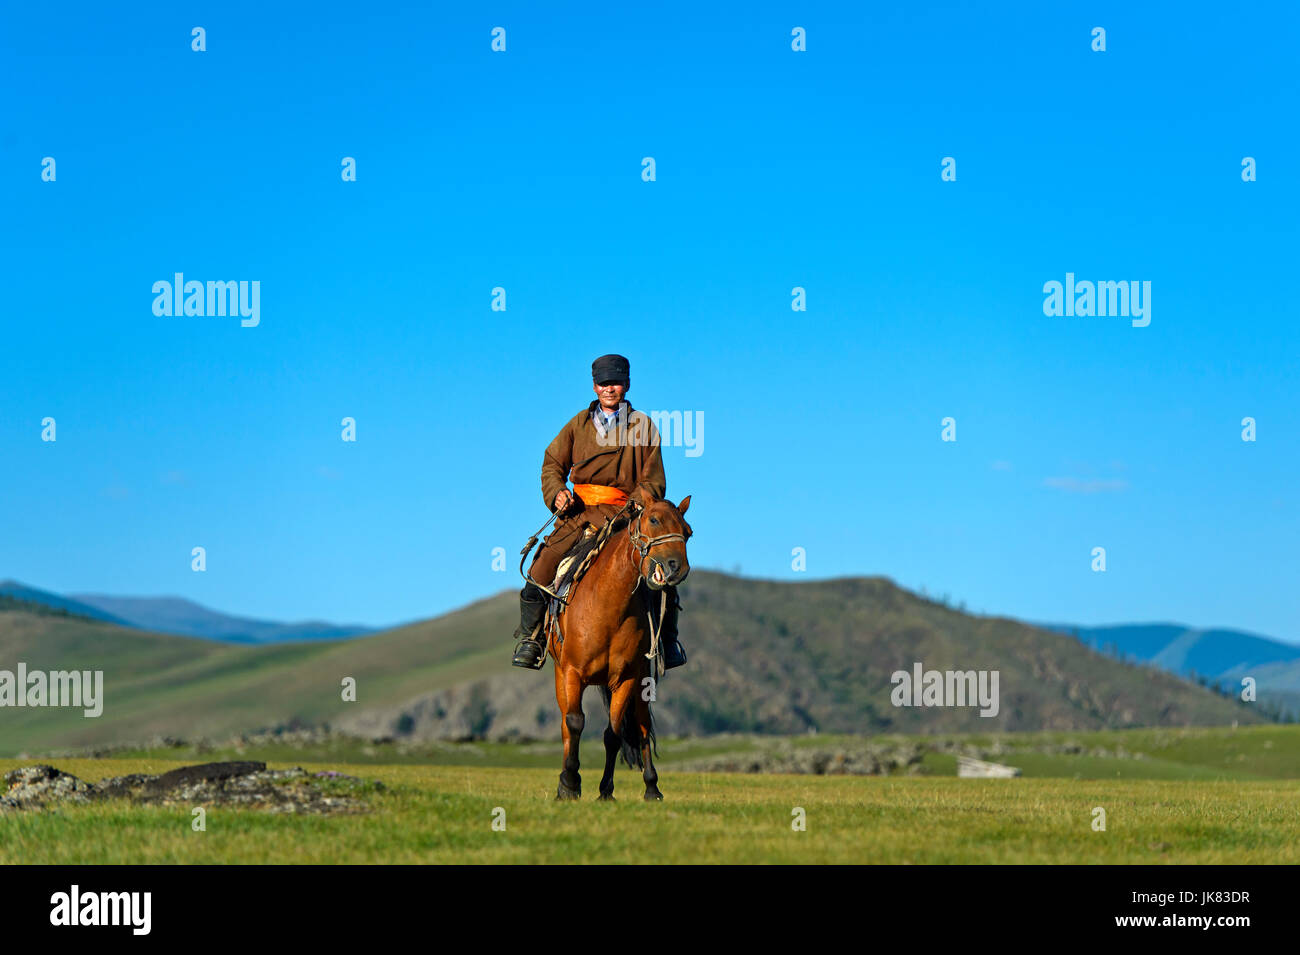 Horseman in the steppe, Orkhon Valley, Mongolia - Stock Image